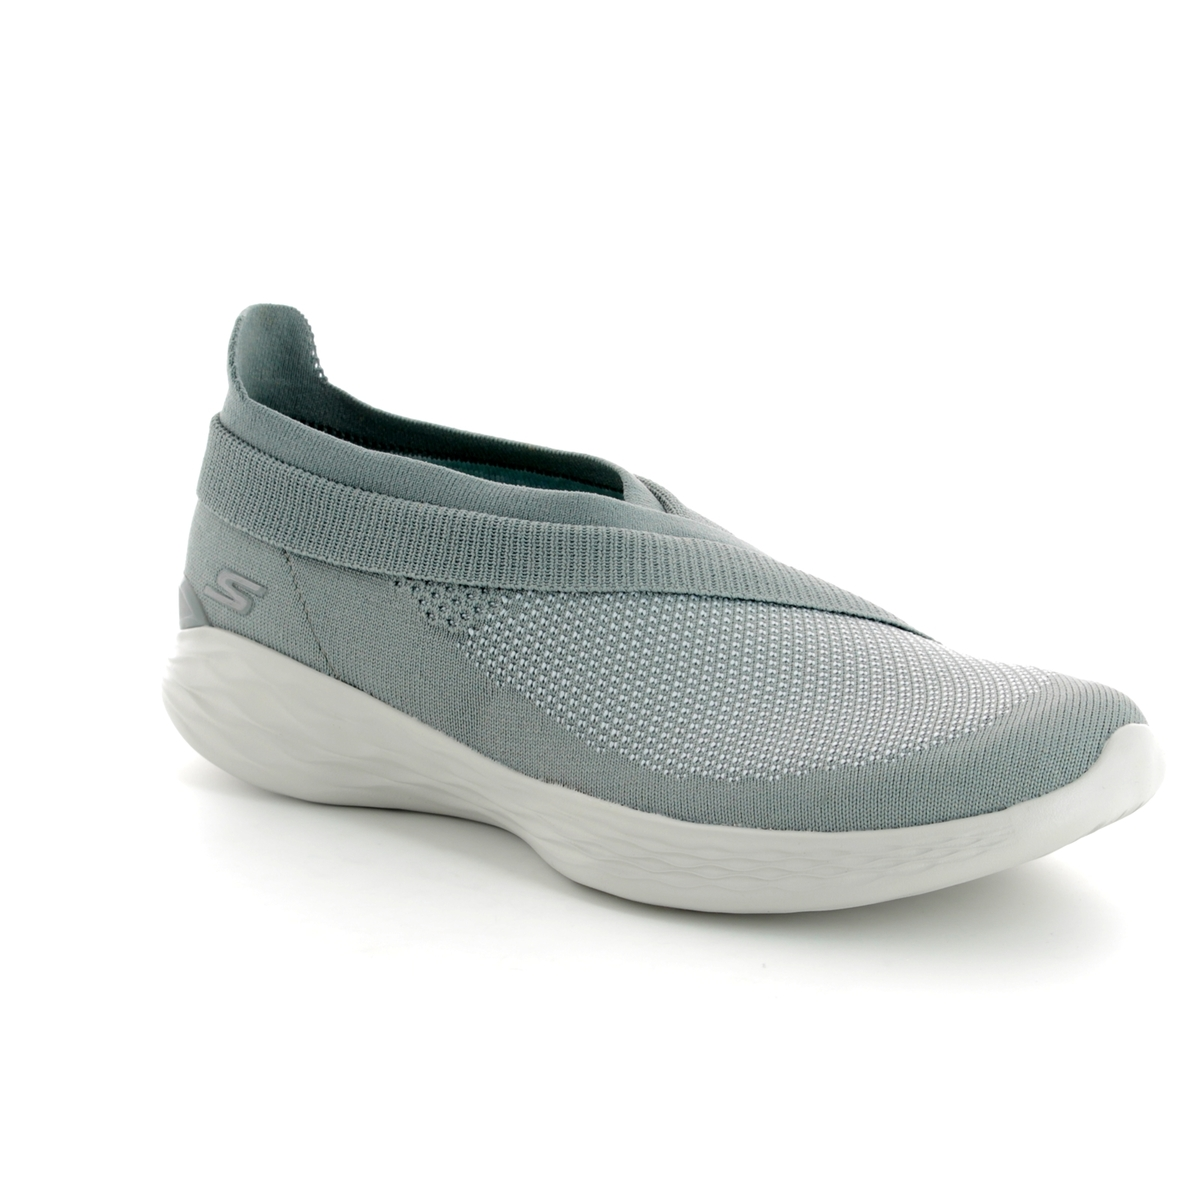 0796f45c9107 Skechers You Luxe 14955 GRY Grey trainers